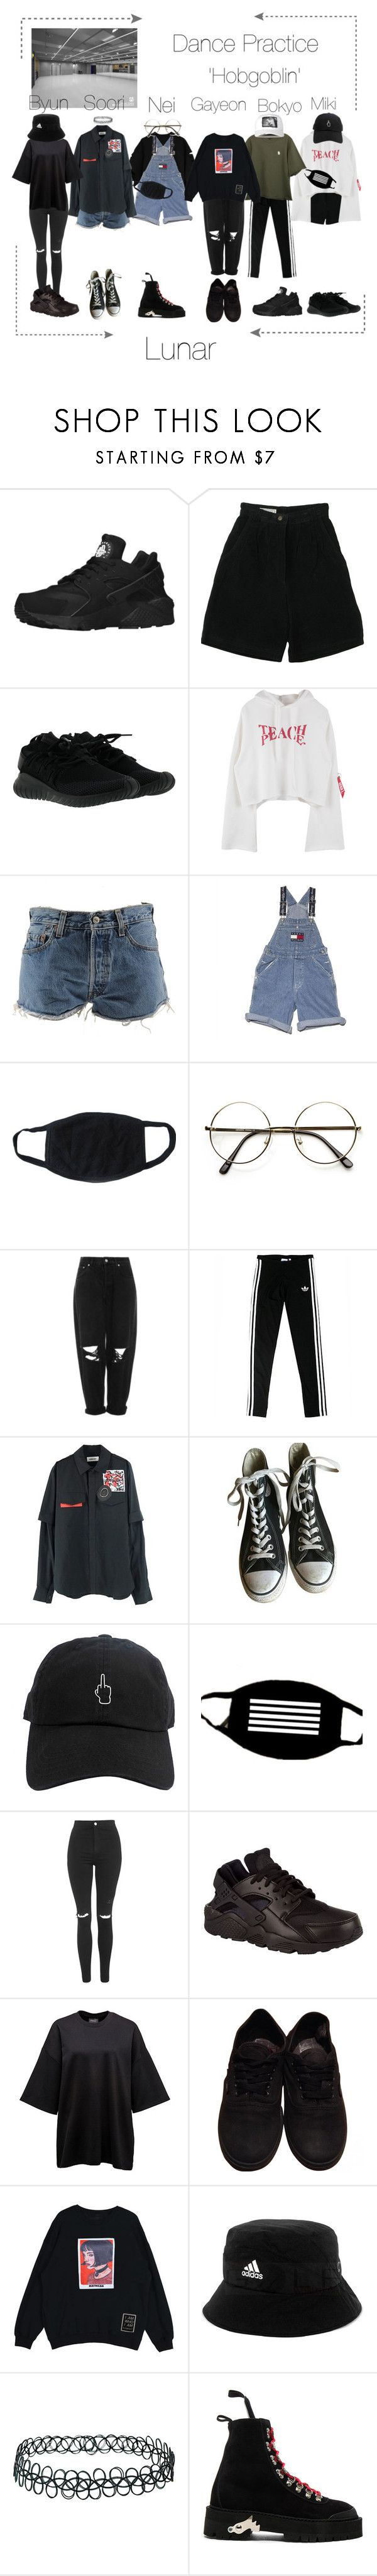 """Lunar 음력 'Hobgoblin' Dance Practice"" by lunar-official ❤ liked on Polyvore featuring NIKE, Retrò, adidas, Levi's, Ralph Lauren, Boutique, Converse, Topshop, Vans and Off-White"